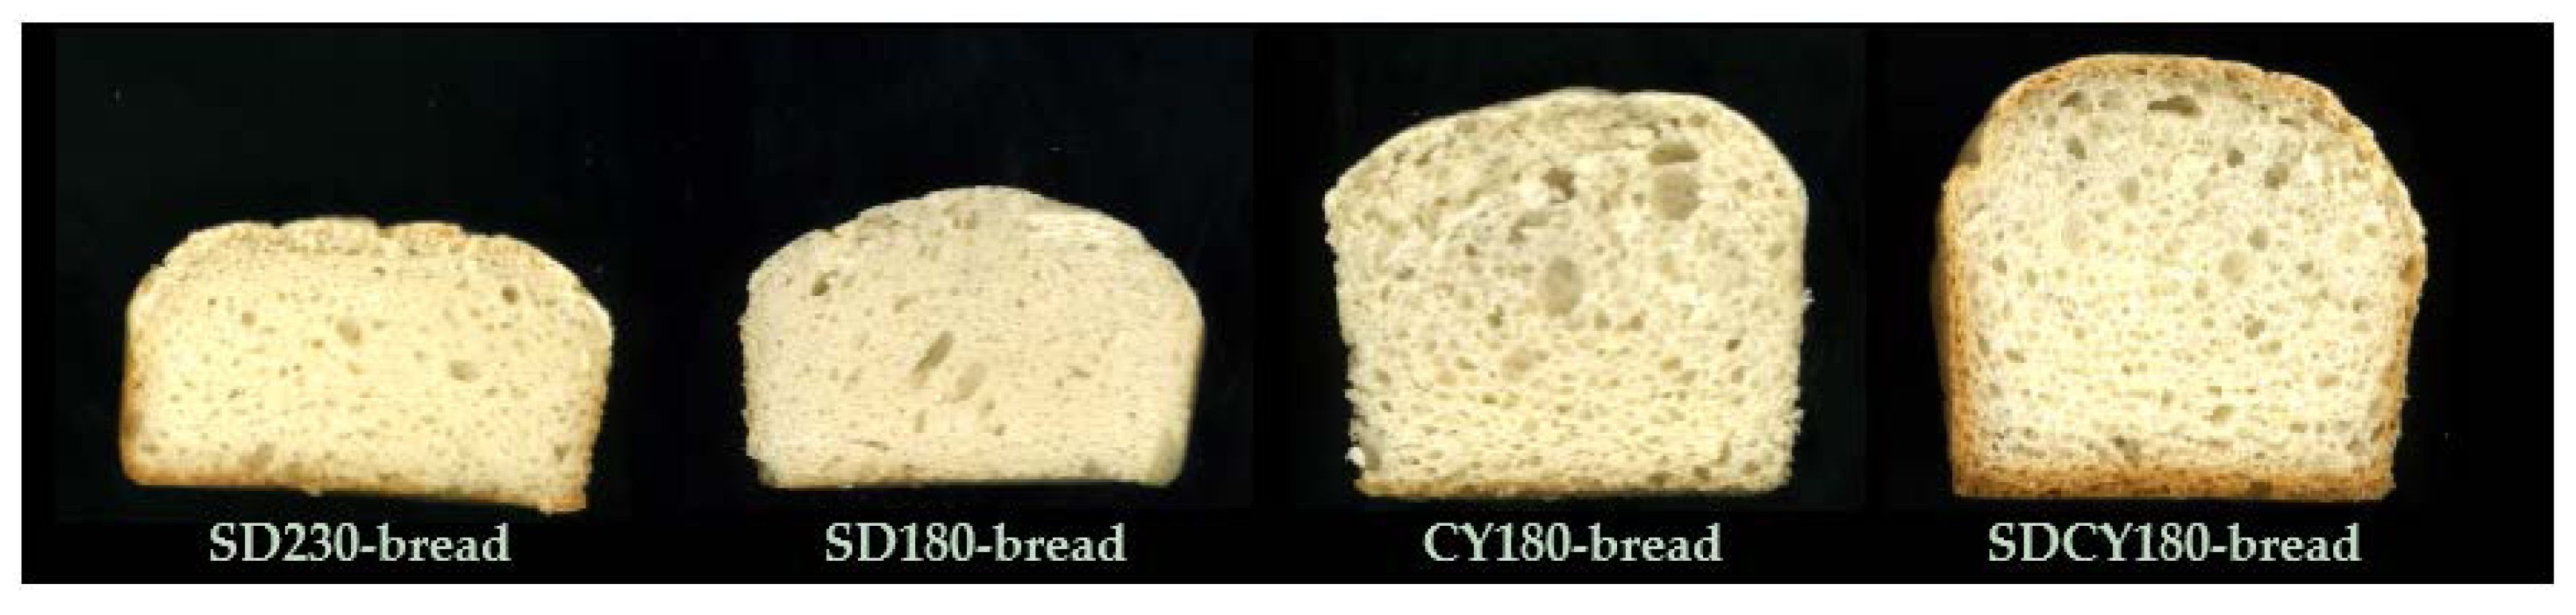 Foods | Free Full-Text | Gluten-Free Bread: Influence of